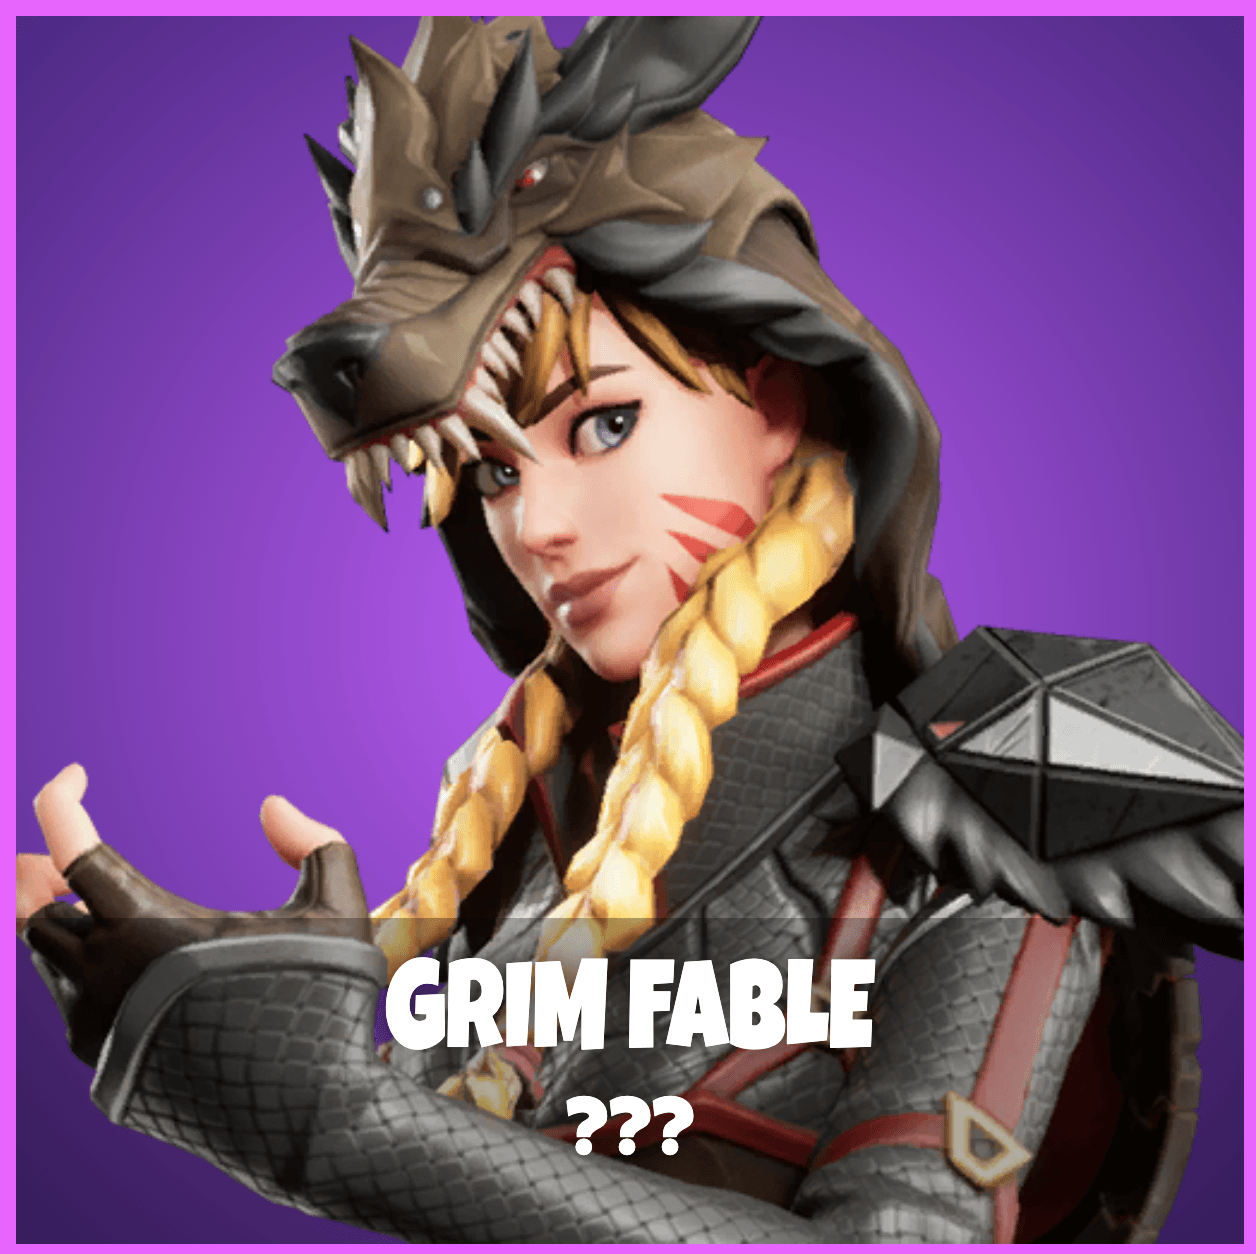 Grim Fable Fortnite wallpapers